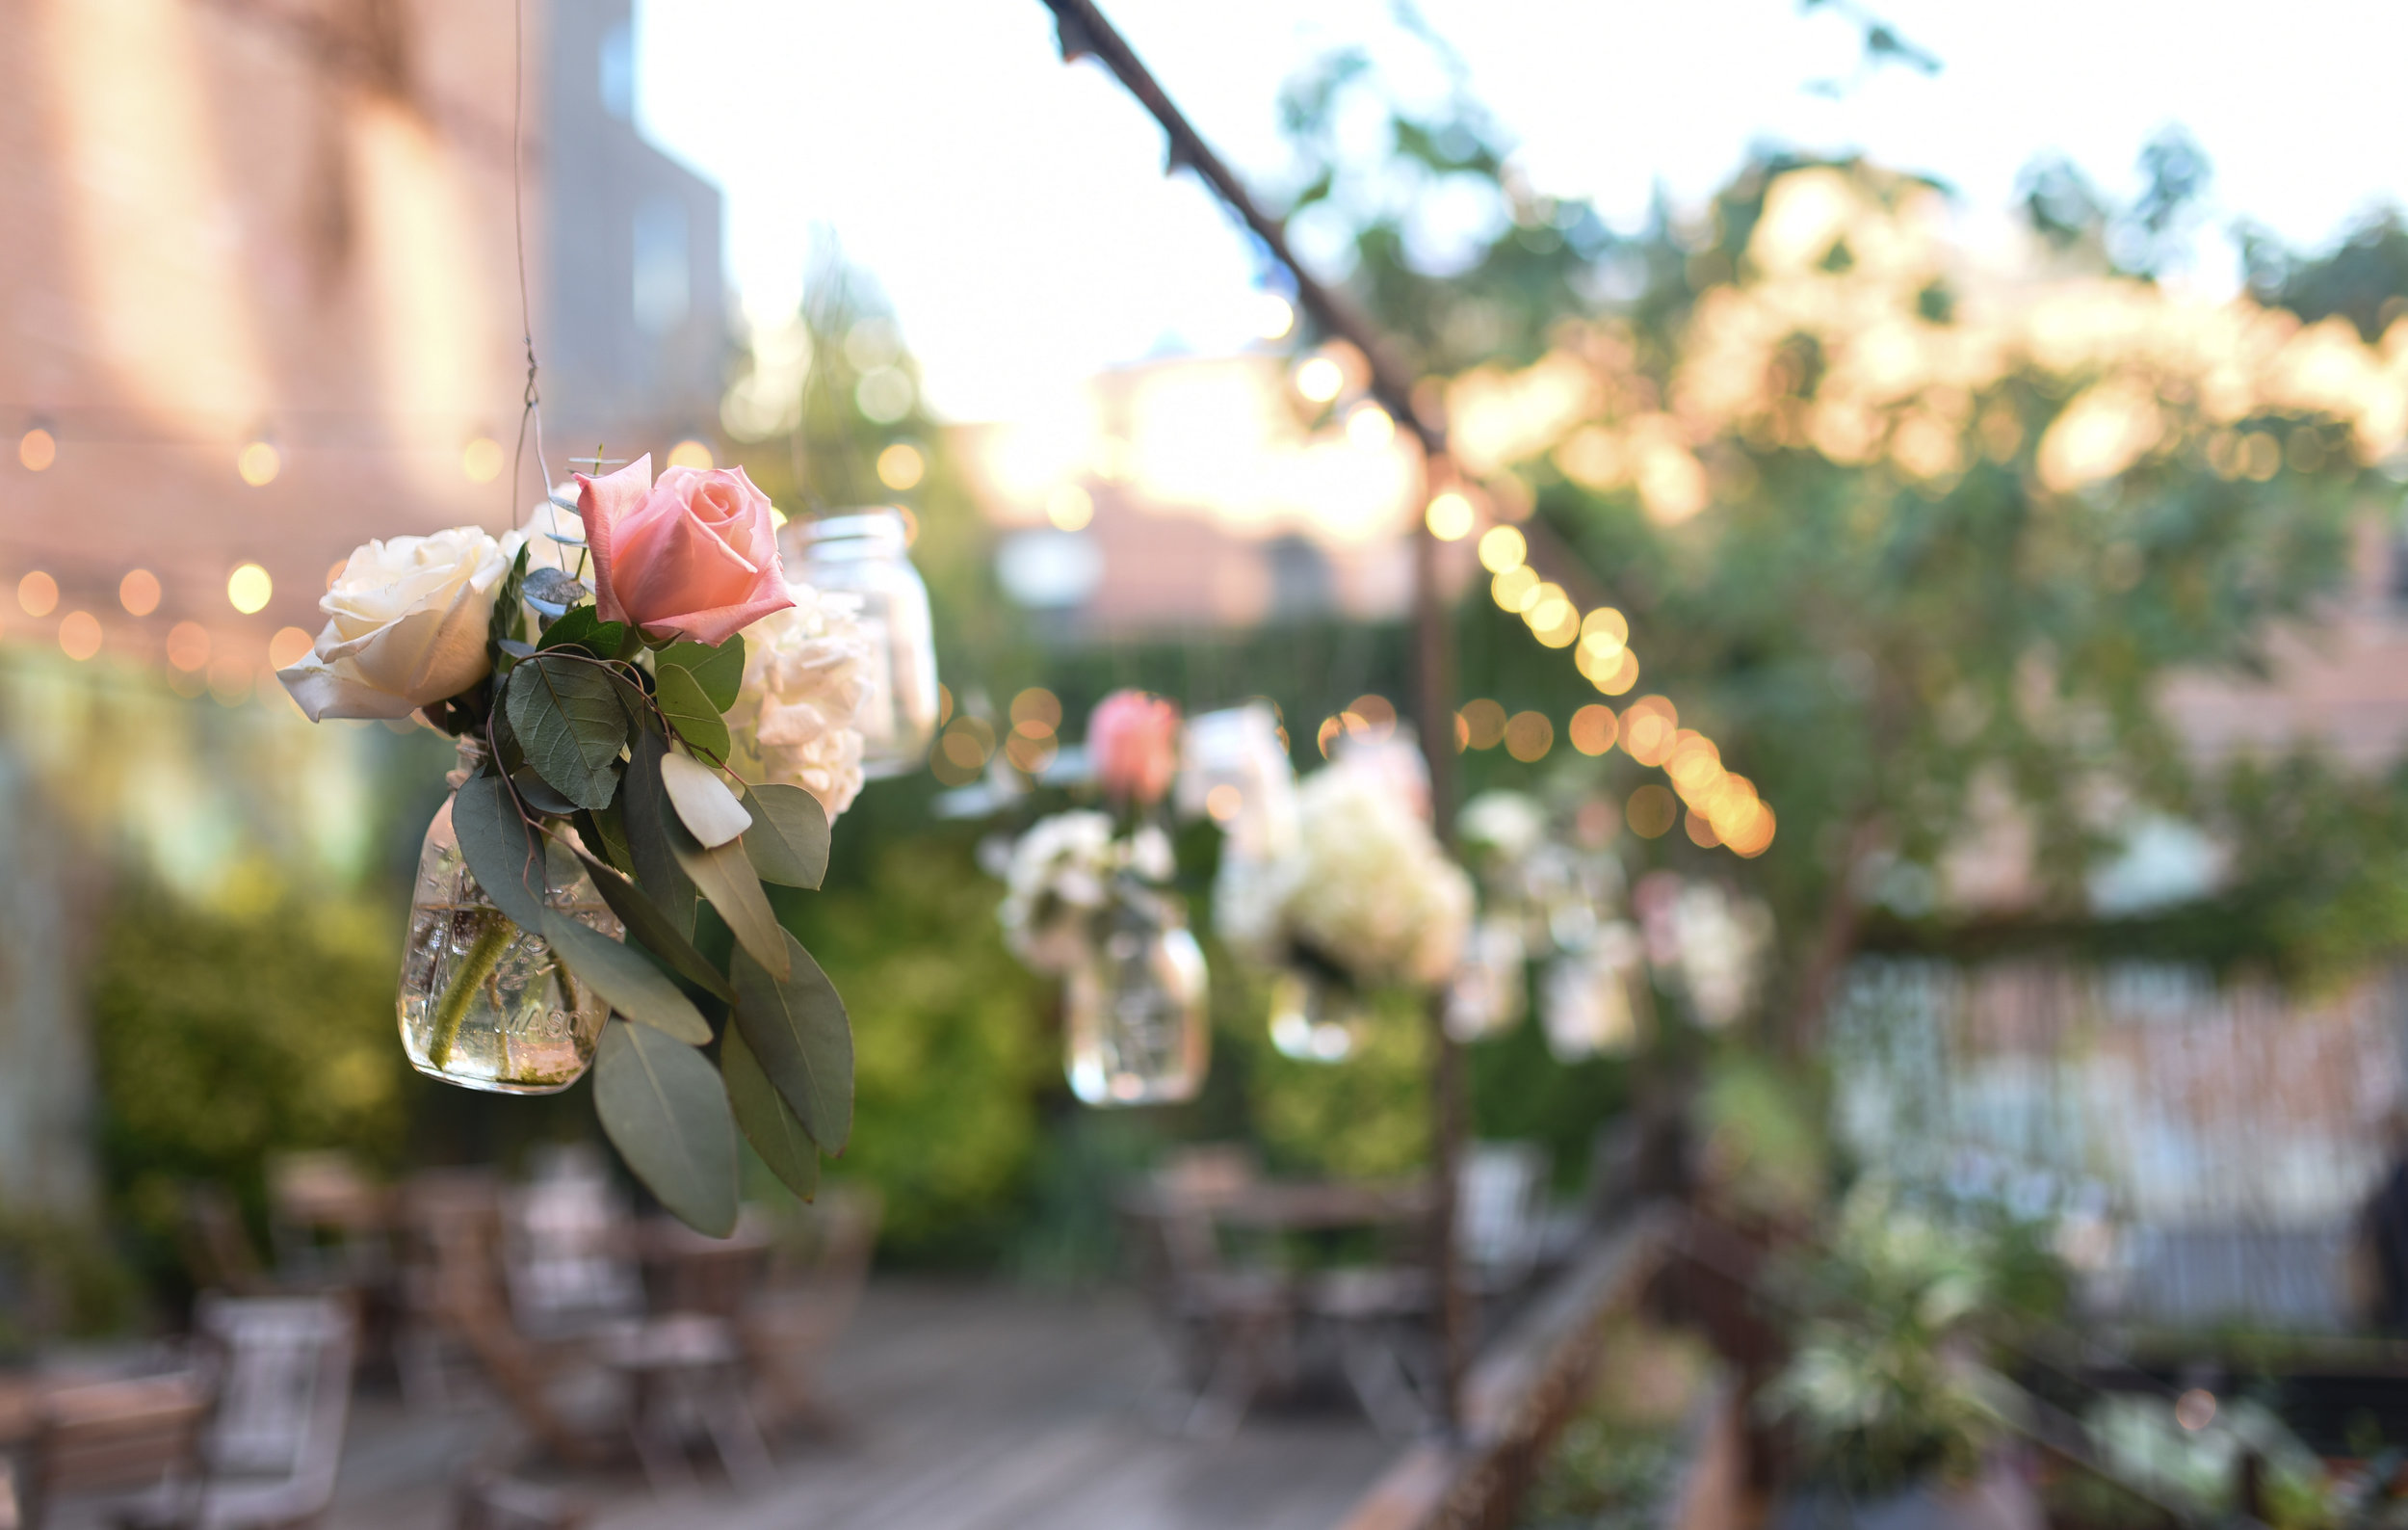 Hanging jars of roses and eucalyptus